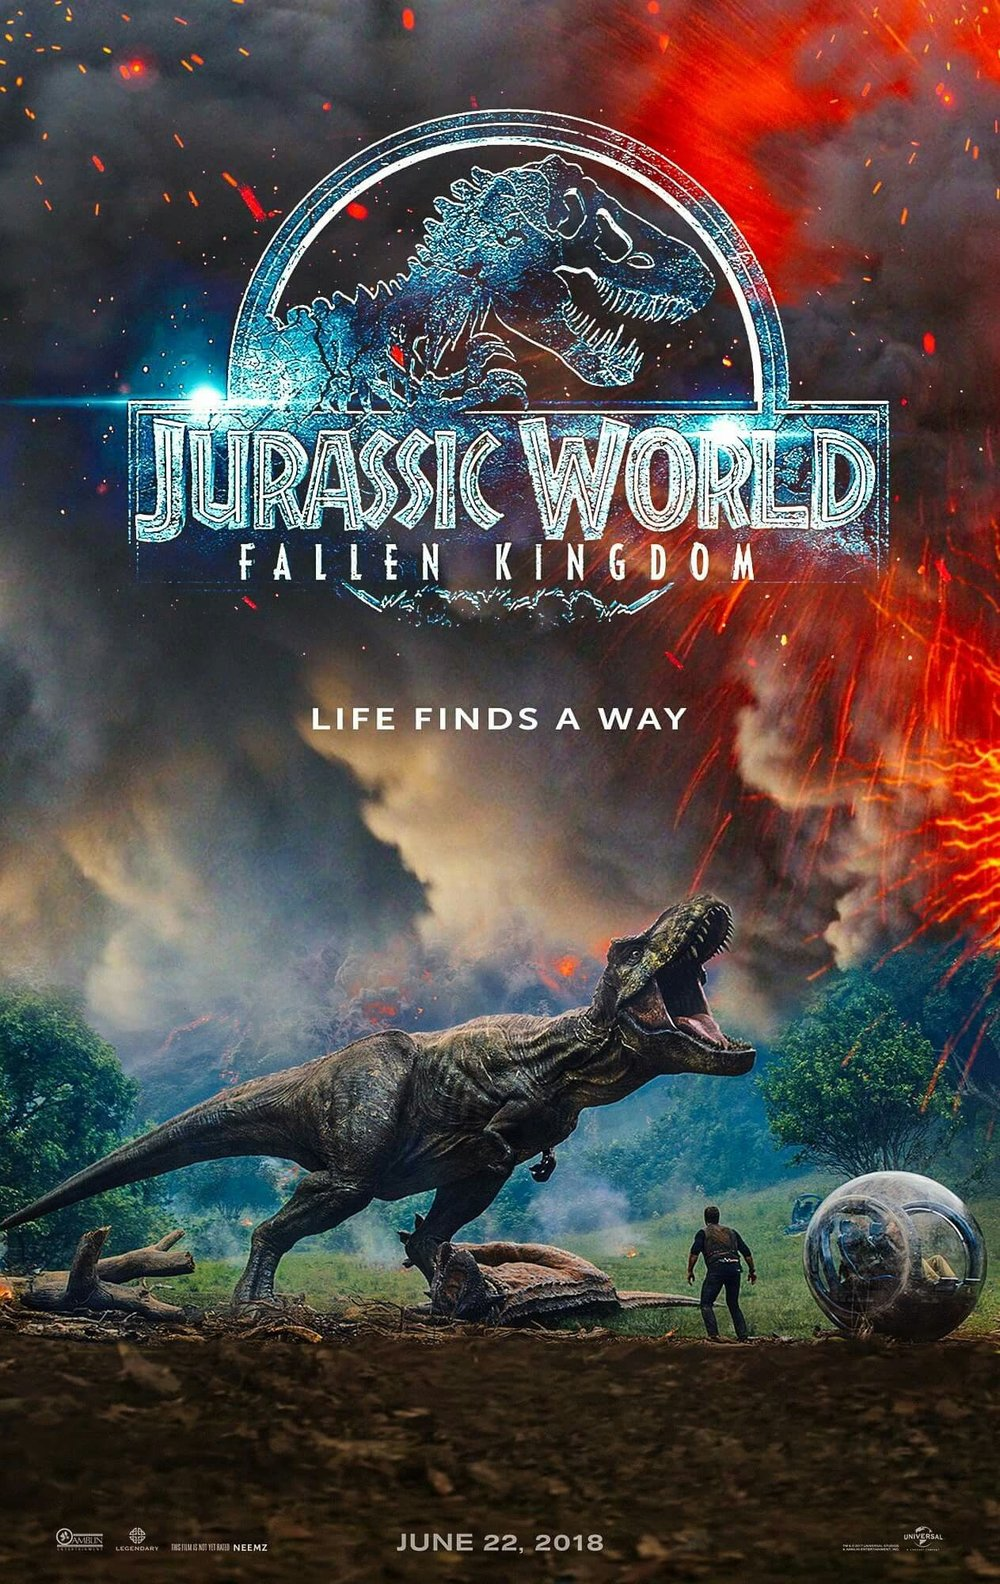 Jurassic World: Fallen Kingdom (2018) - Directed by: J. A. BayonaStarring: Chris Pratt, Bryce Dallas HowardRated: PG13Running Time: 2h 8mTMM Score: 2 stars out of 5STRENGTHS: It is a movie.WEAKNESSES: The emptiness inside when you leave the theater.